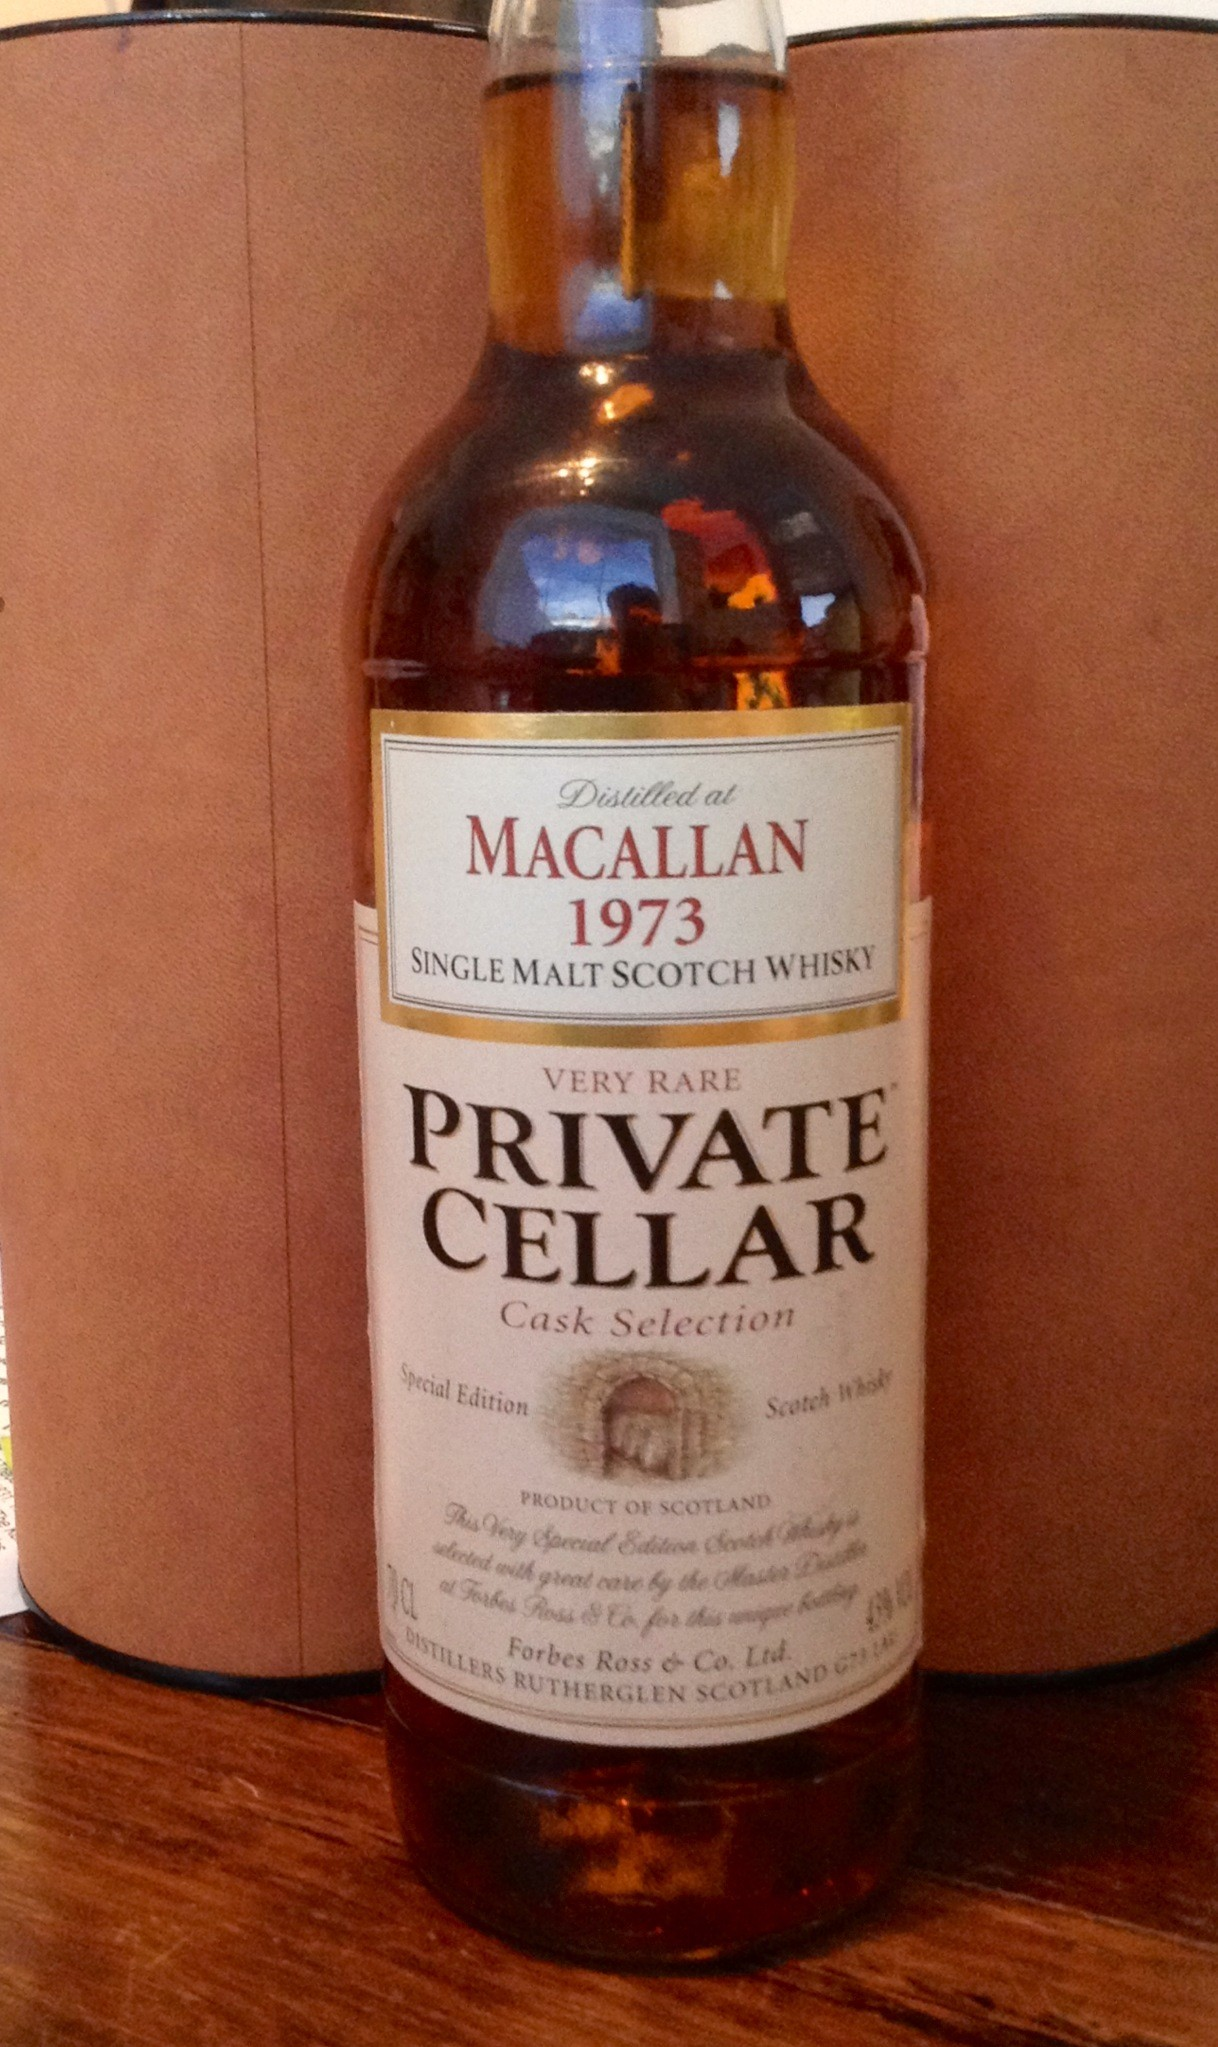 Macallan 1973 'Private Cellar'